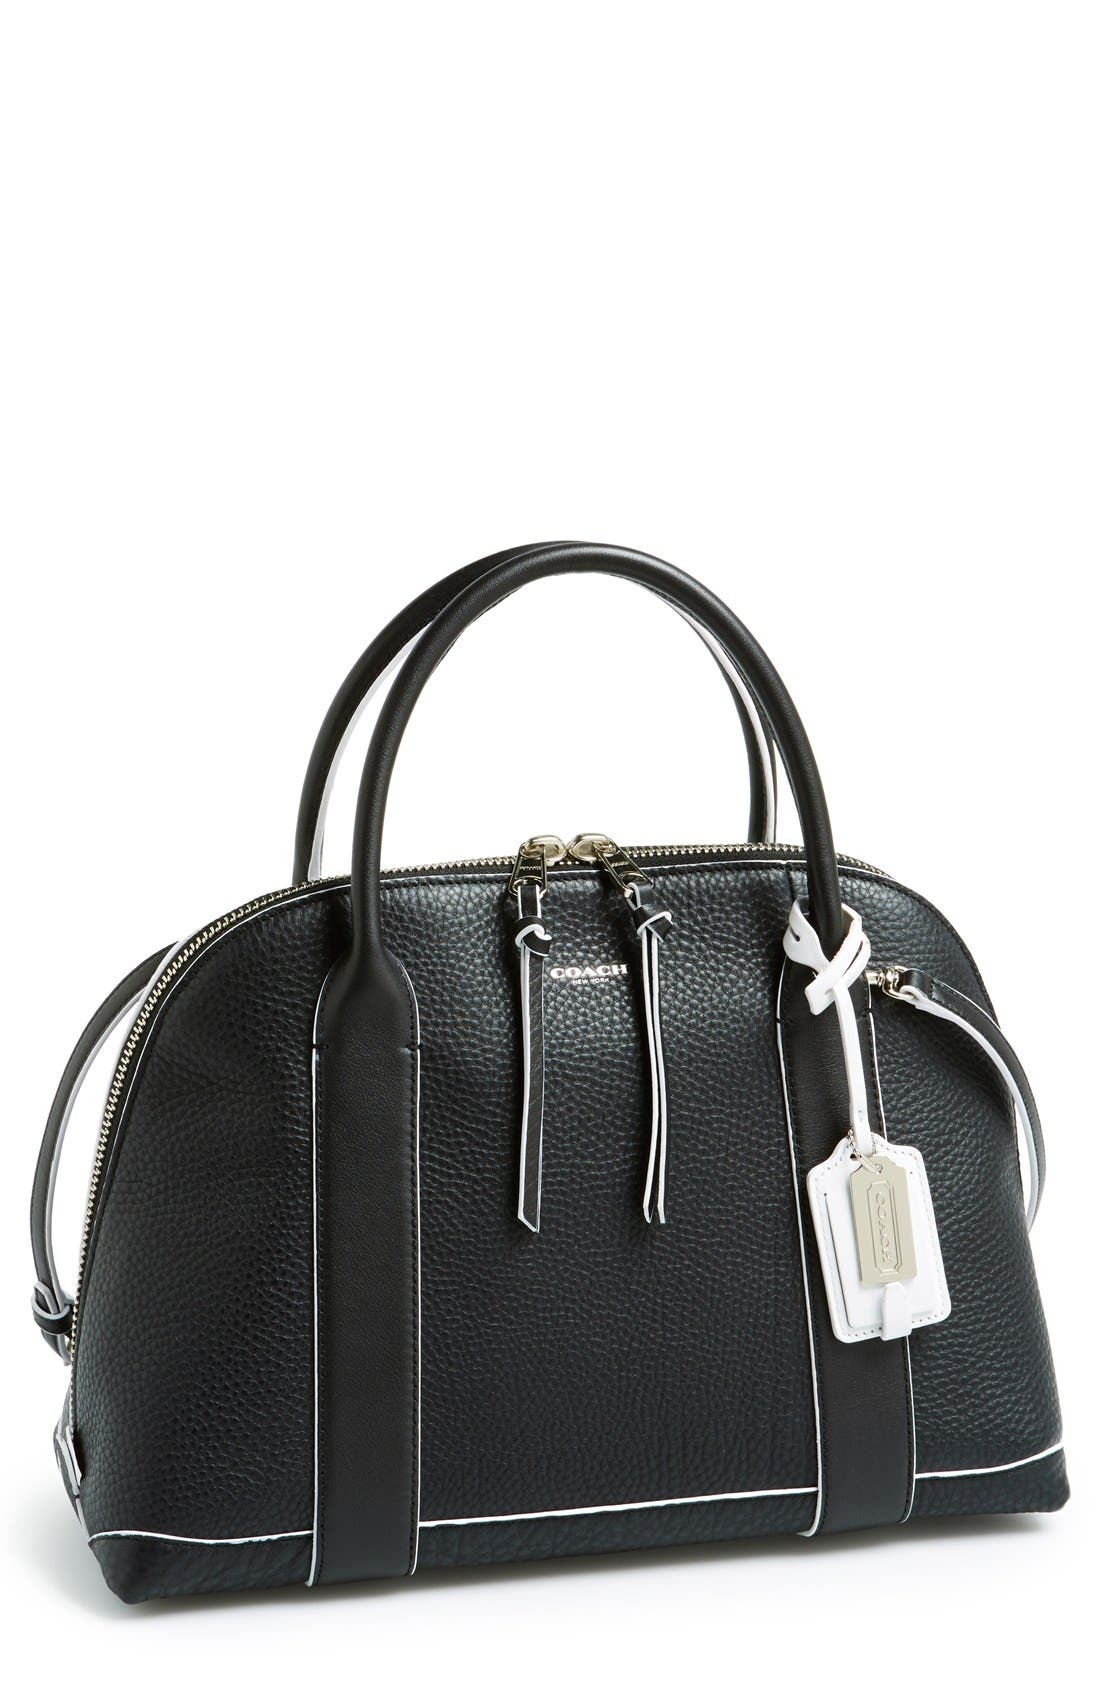 Alternate Image 1 Selected - COACH 'Preston' Leather Tote